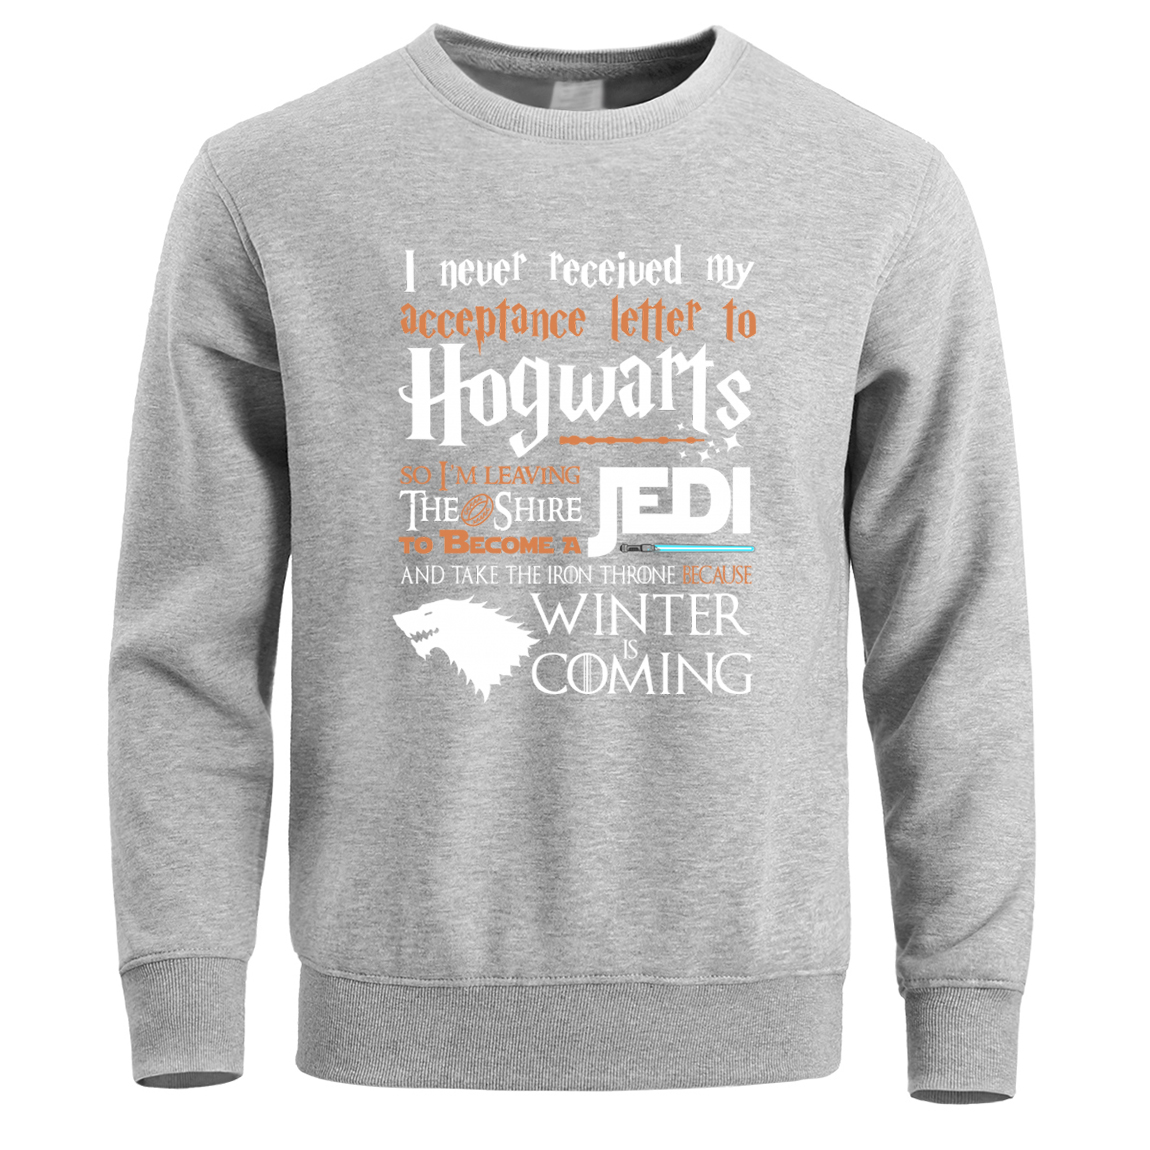 Hogwarts Game Of Thrones Star Wars Jedi Sweatshirt Hoodies Men Pullover Hoodie Sweatshirts Winter Fleece Warm Hoody Crewneck